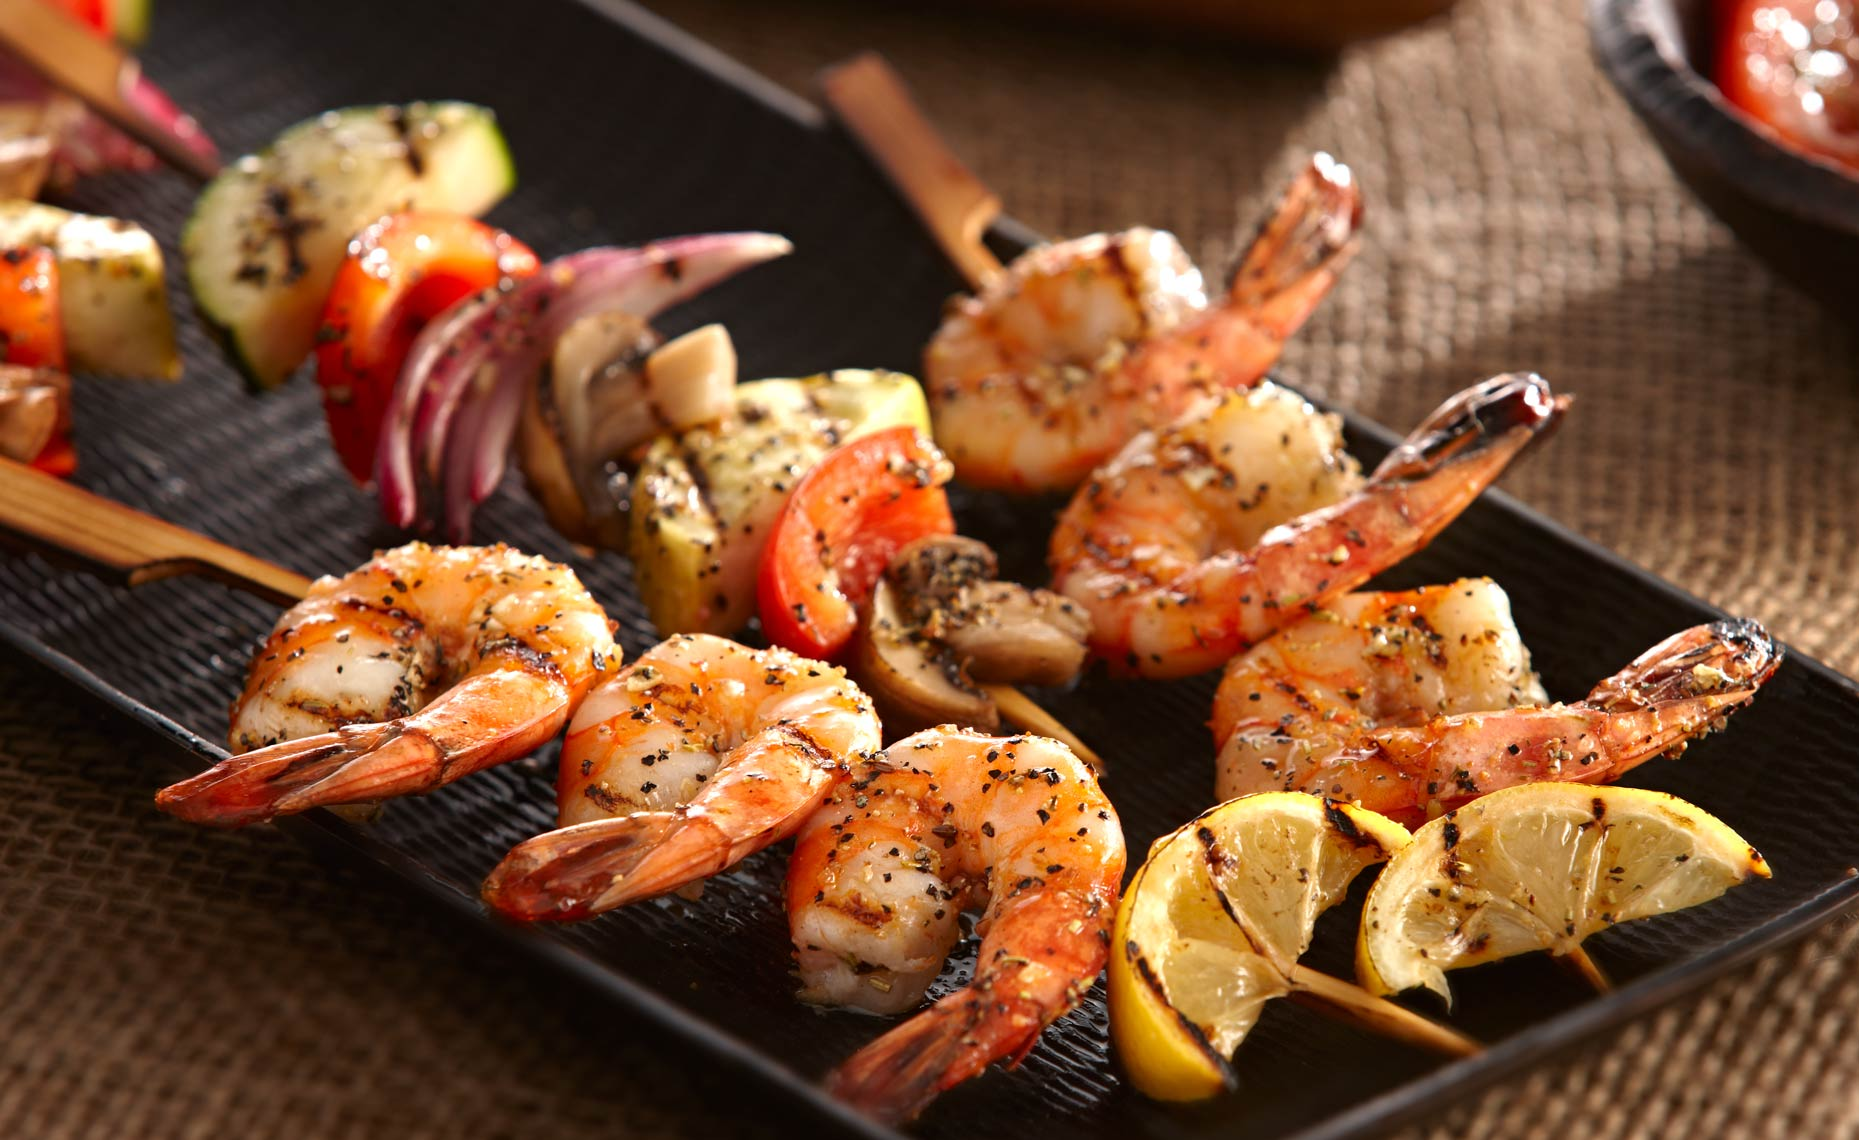 food-packaging-photographers-shrimp-grilled-skewer-16